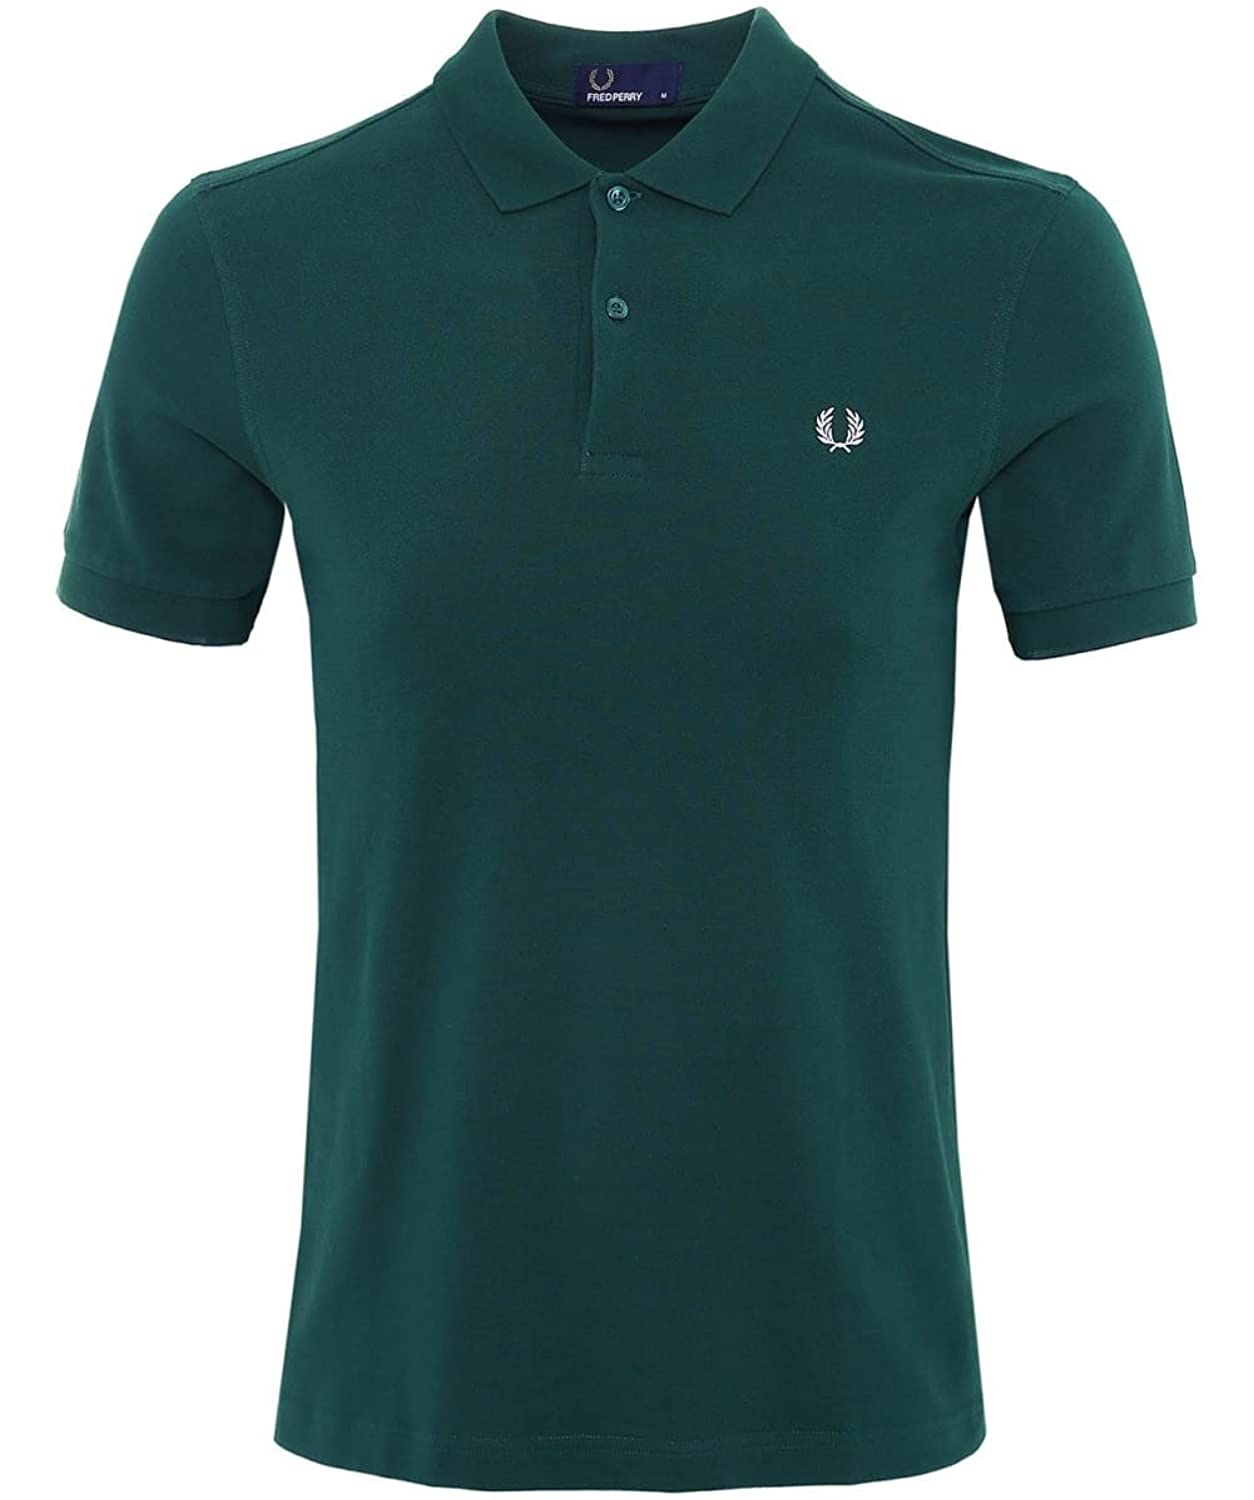 Fred Perry Herren T-Shirt Fp Plain Shirt